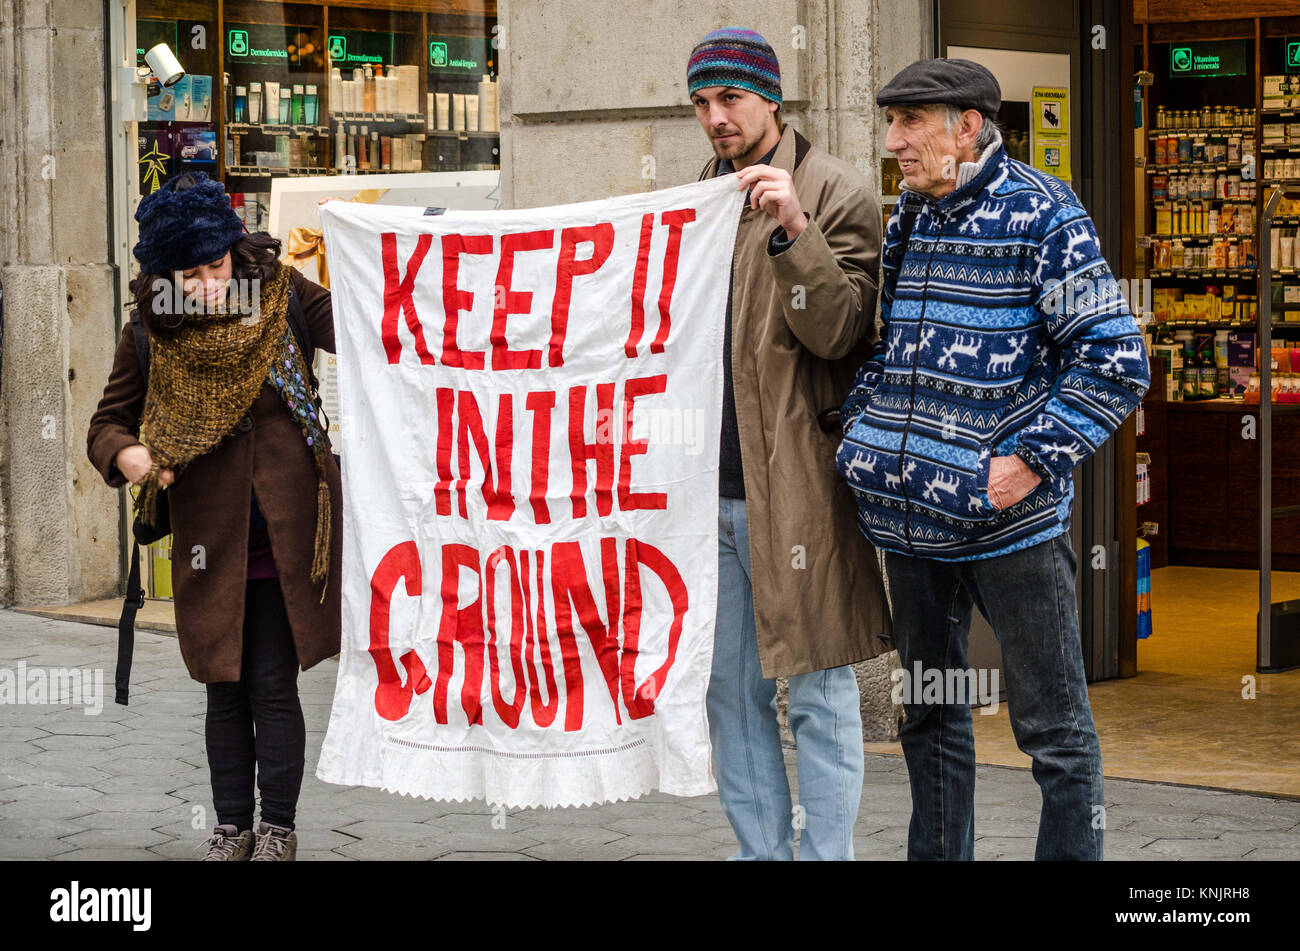 Barcelona, Catalonia, Spain. 12th Dec, 2017. Several demonstrators seen with a banner in favour of renewable energies. - Stock Image